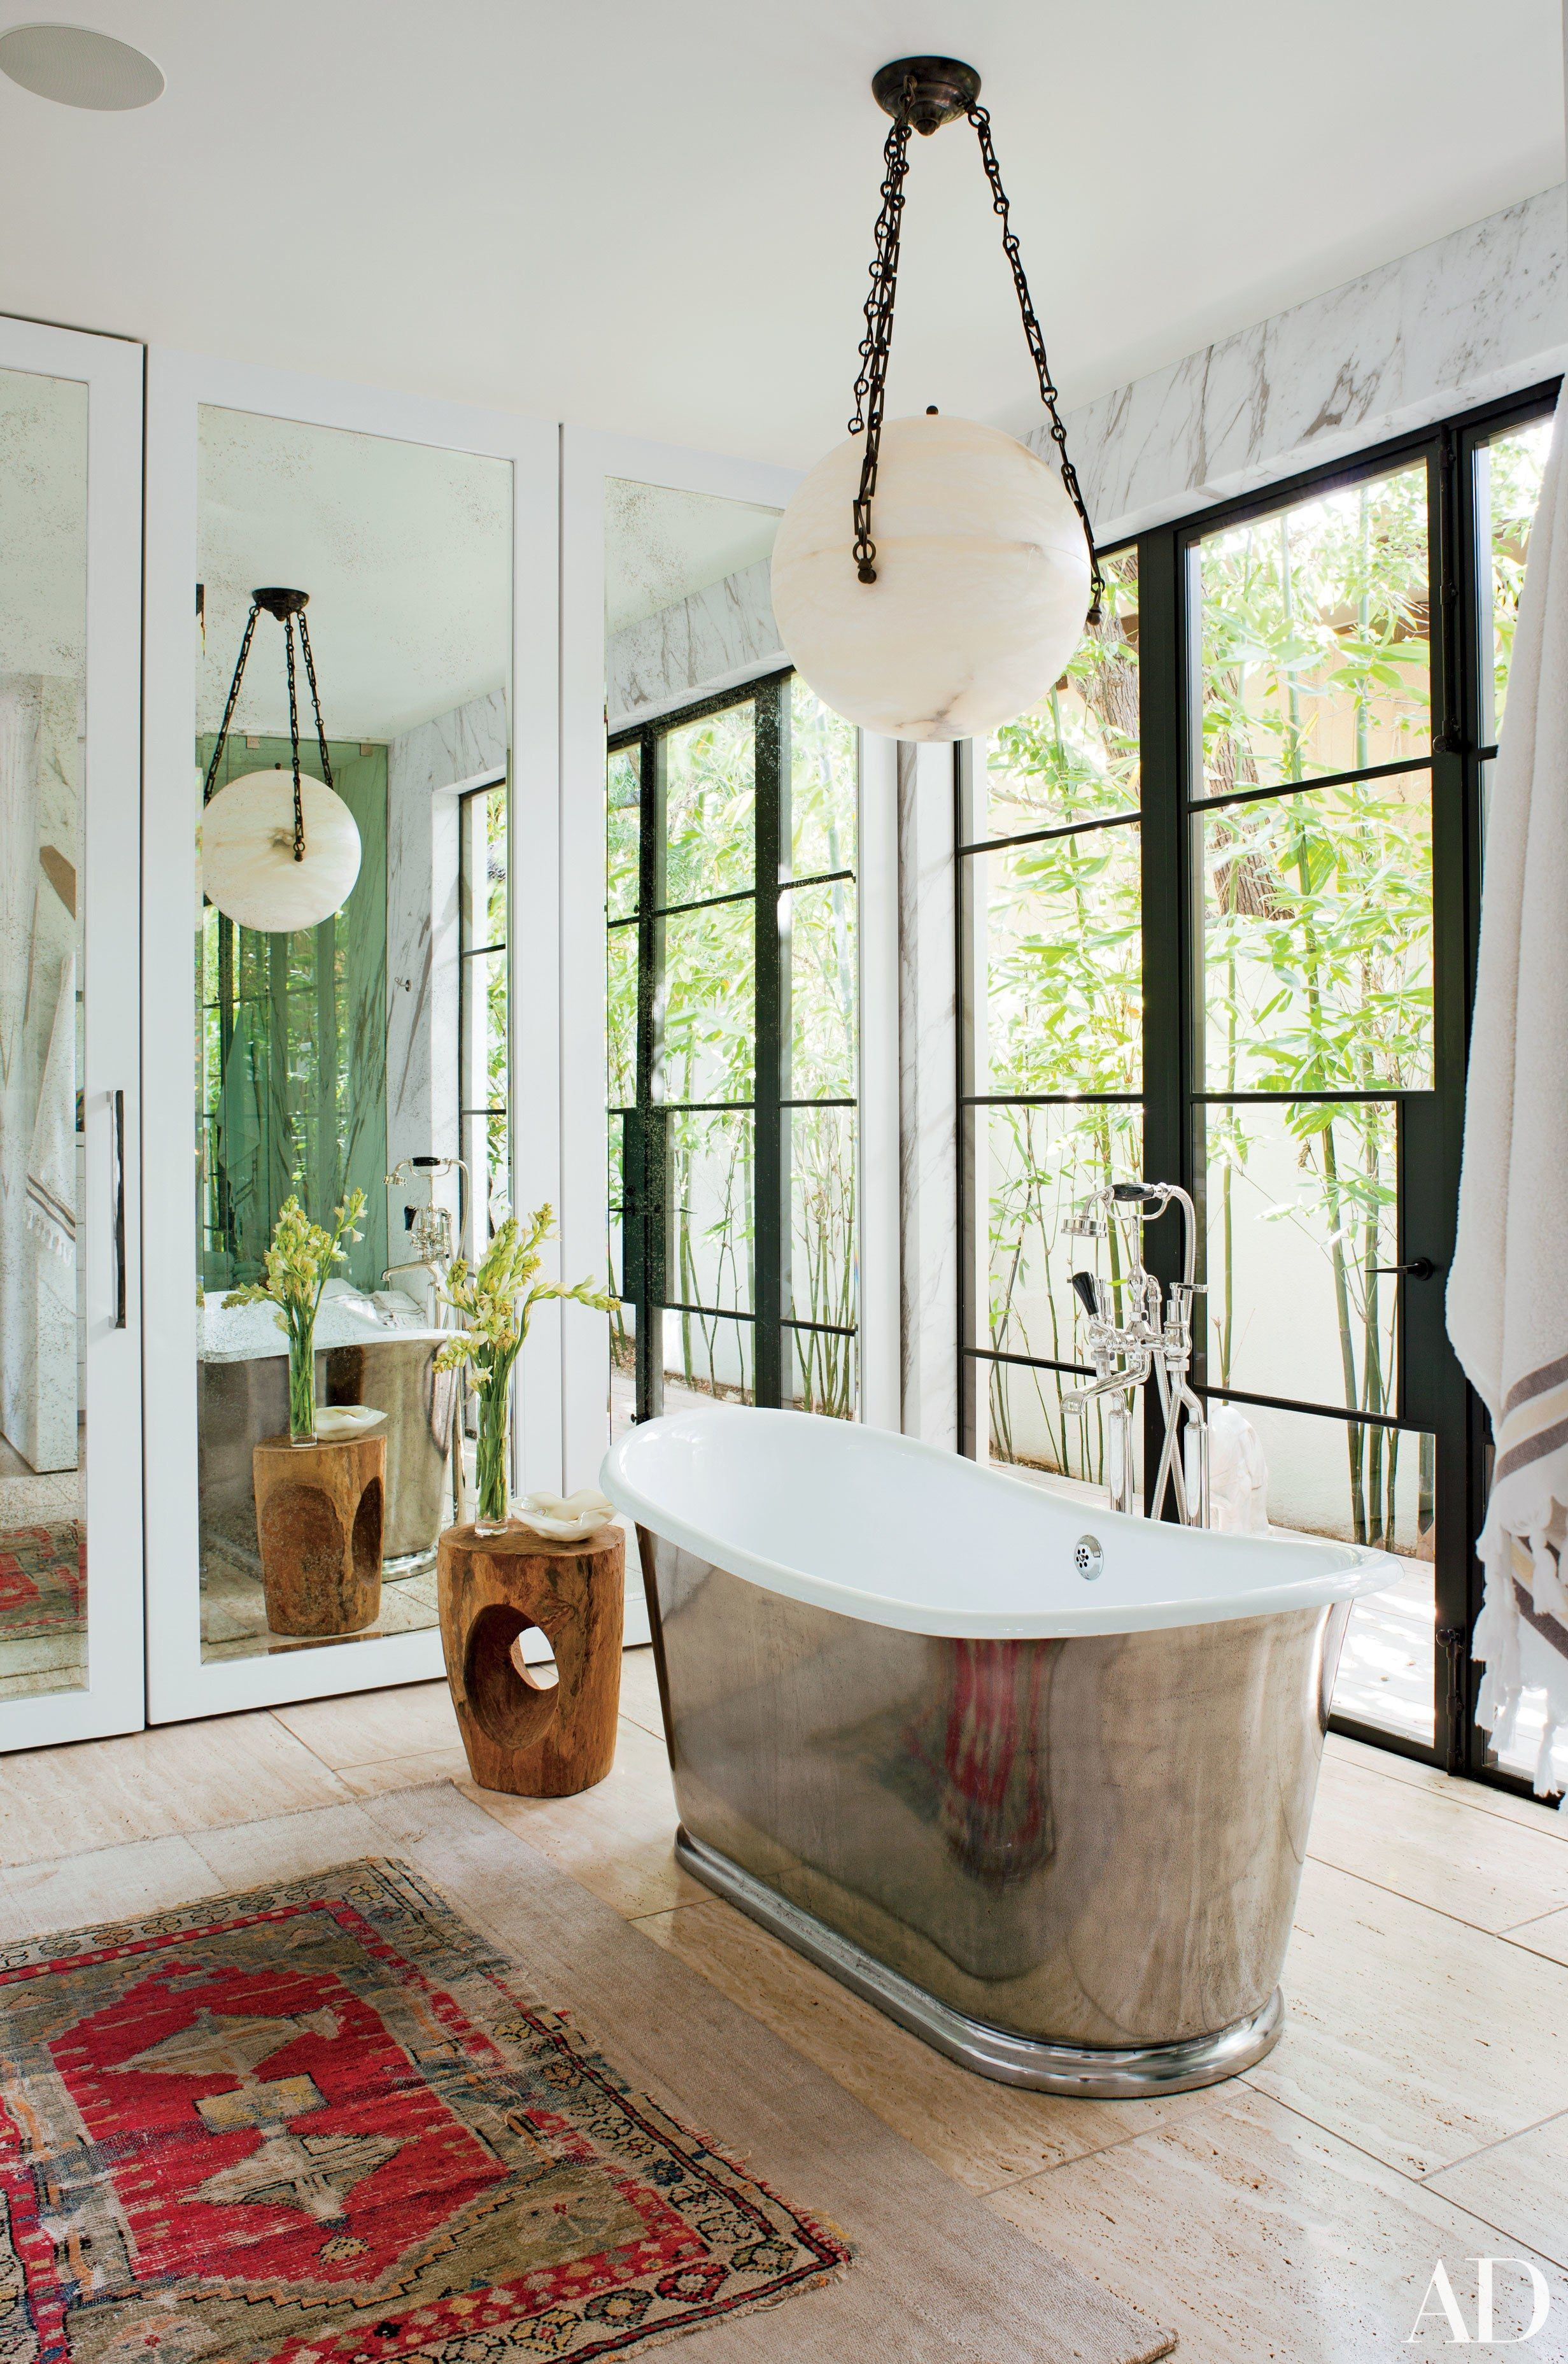 22 Luxury Bathrooms In Celebrity Homes | Architectural Digest